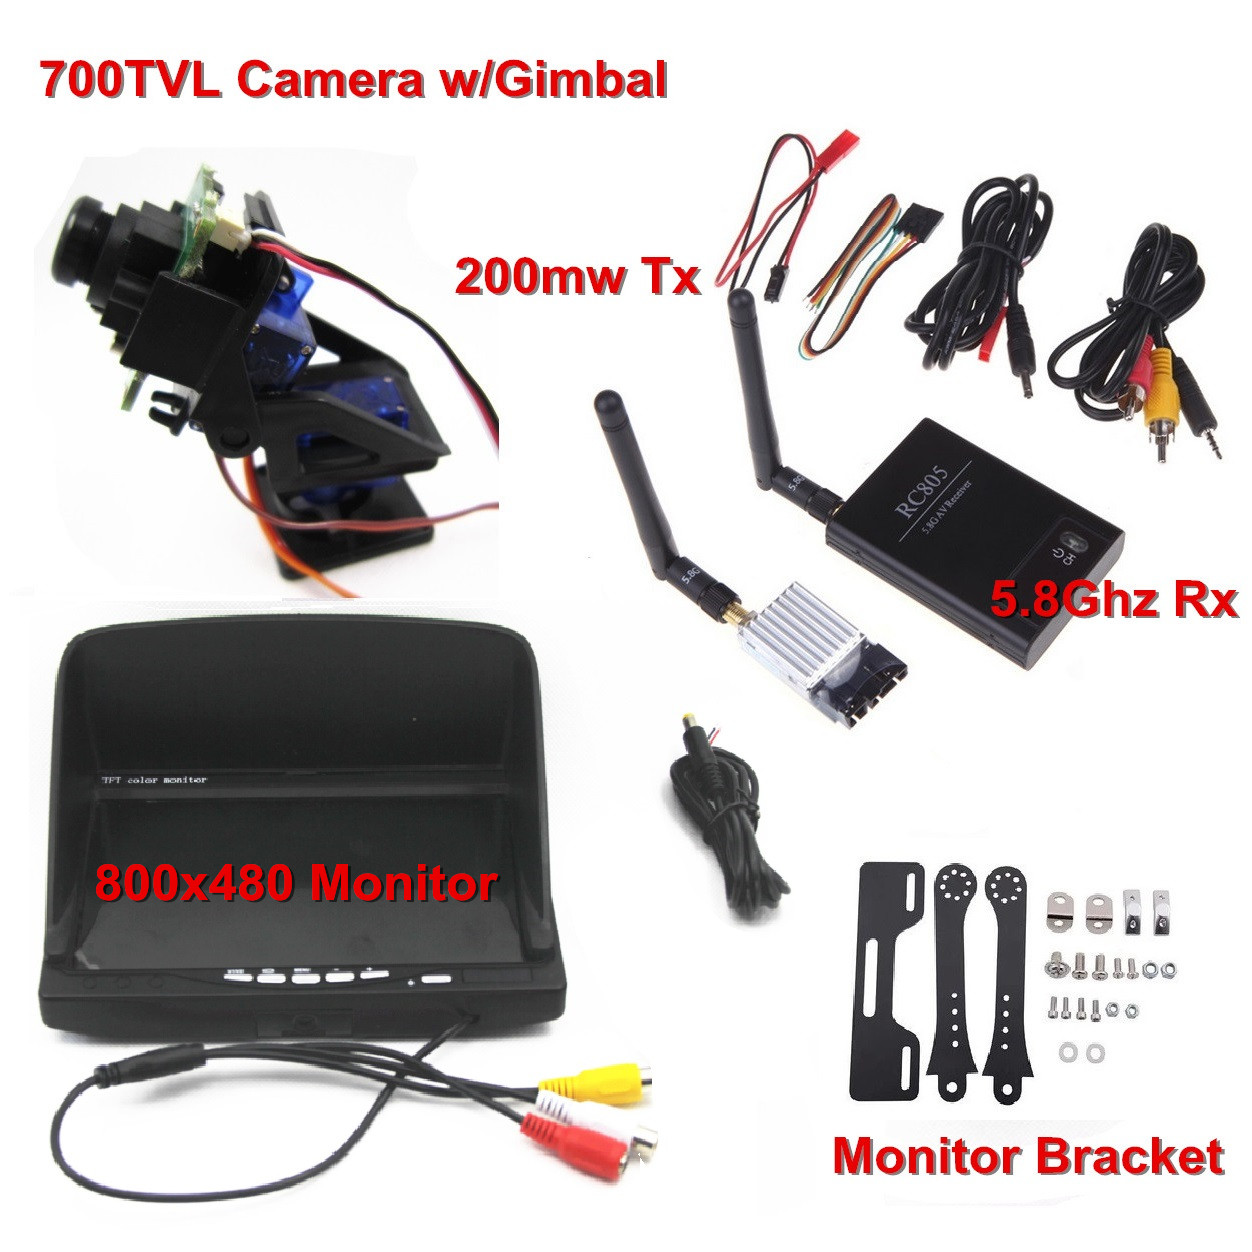 FPV Combo 5.8Ghz FPV System 700TVL camera w/gimbal 5.8Ghz Rx and 200mw Tx and 800x480 Monitor For FPV Quadcopter стоимость